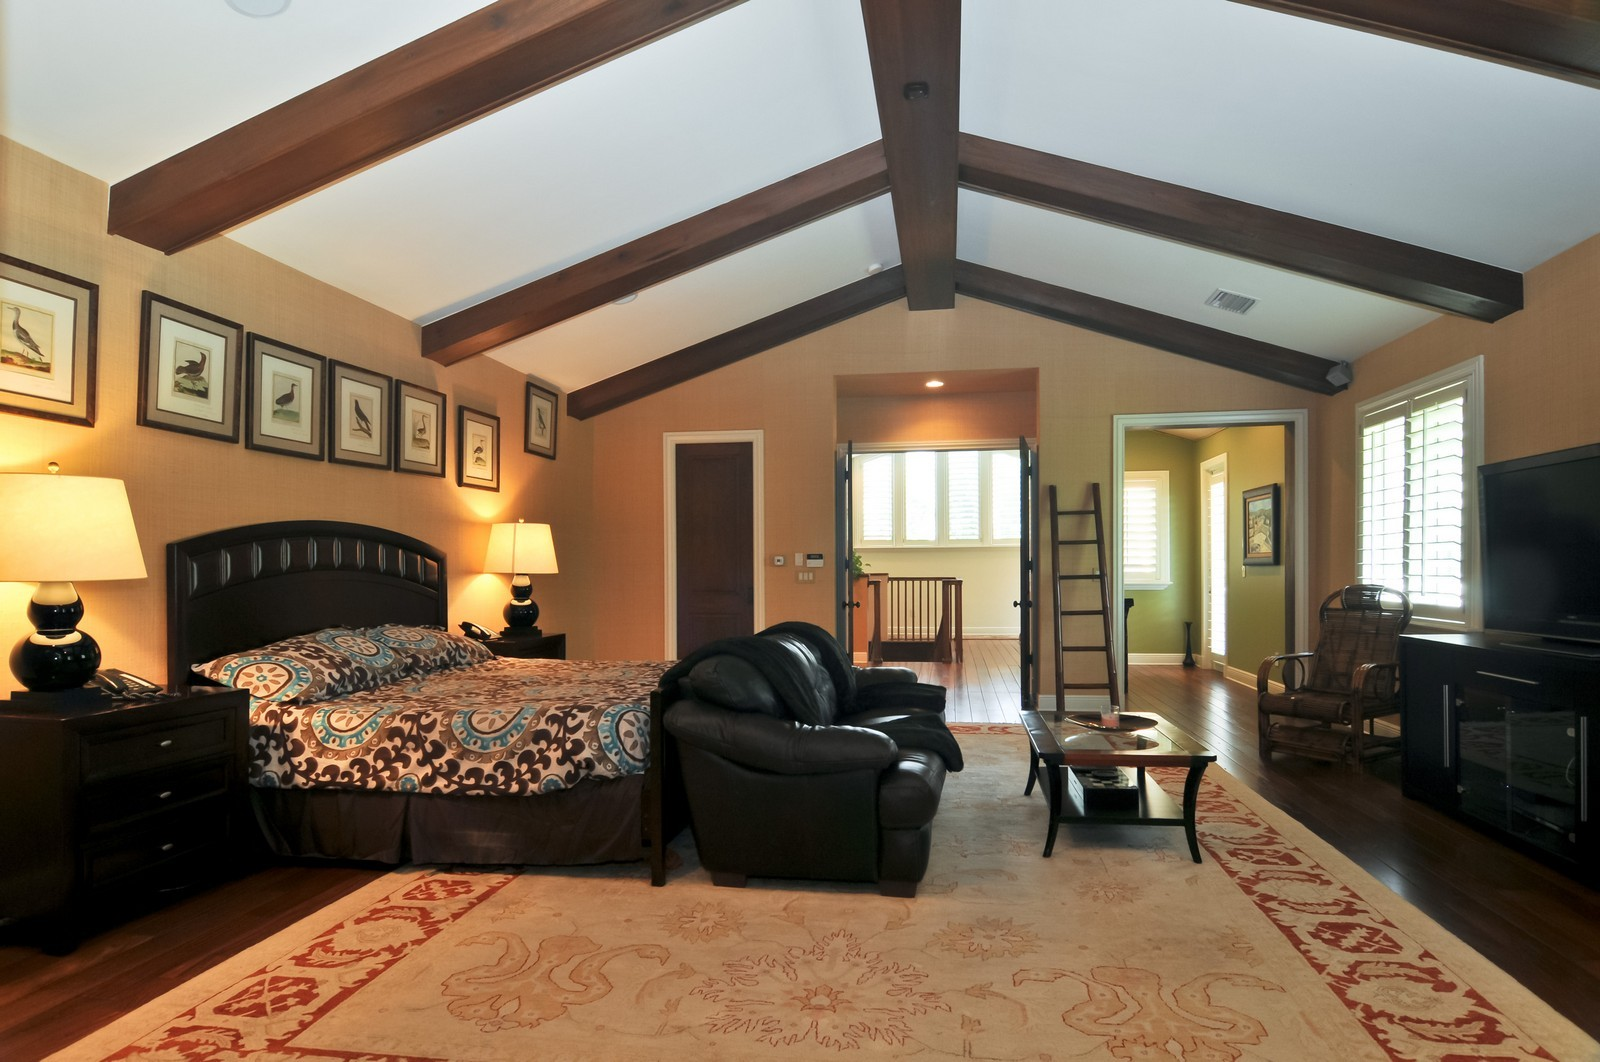 Real Estate Photography - 14200 Farmer Rd, Palmetto Bay, FL, 33158 - Master Bedroom